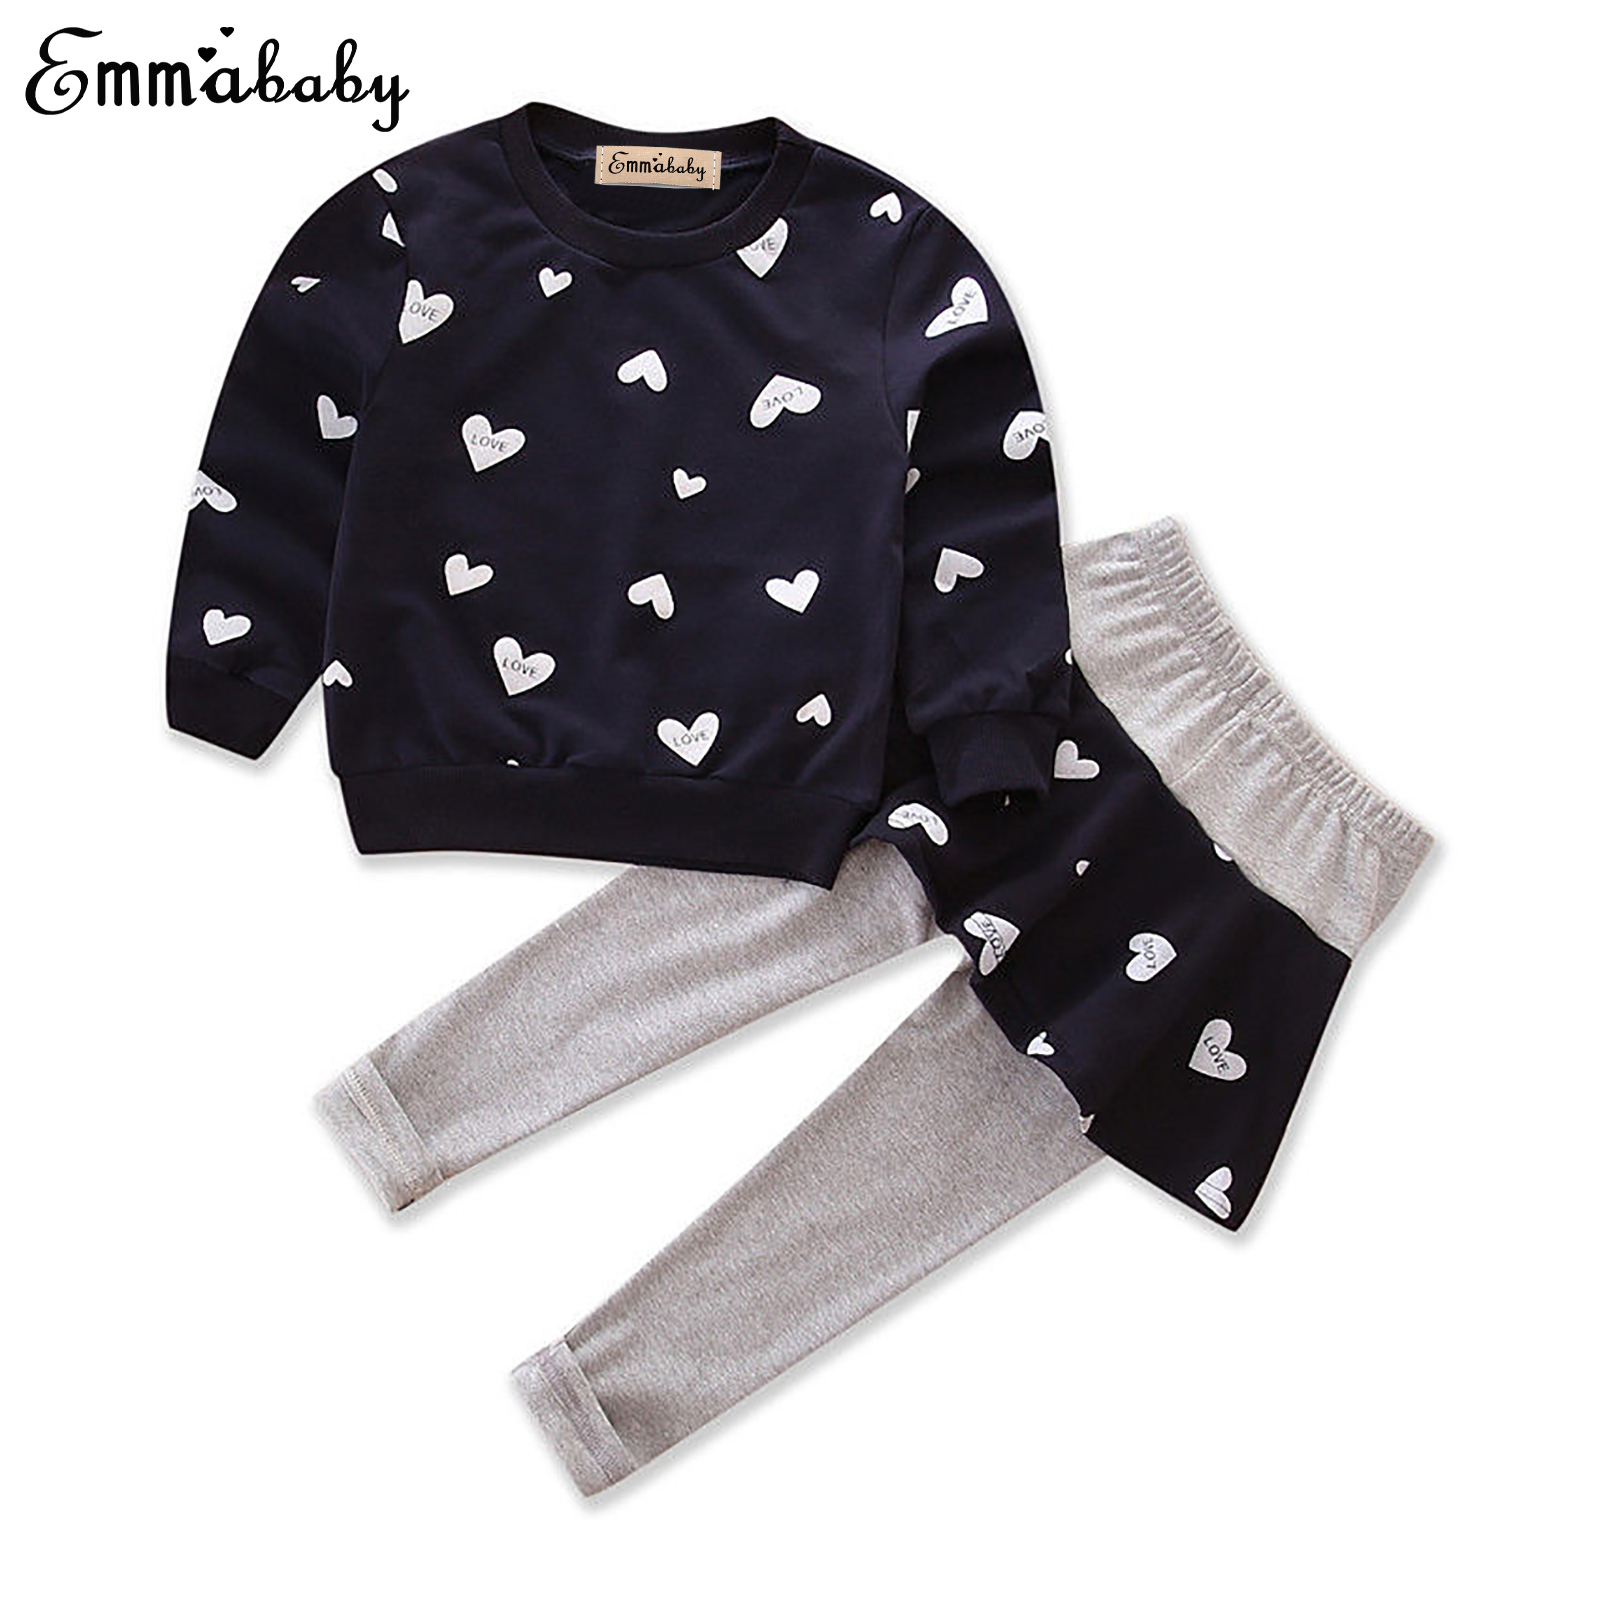 Emmababy Baby Girls Kids Long Sleeve Cotton Sweatshirt Jumper Tops+Long Pants 2pcs Set Outfits Tracksuit